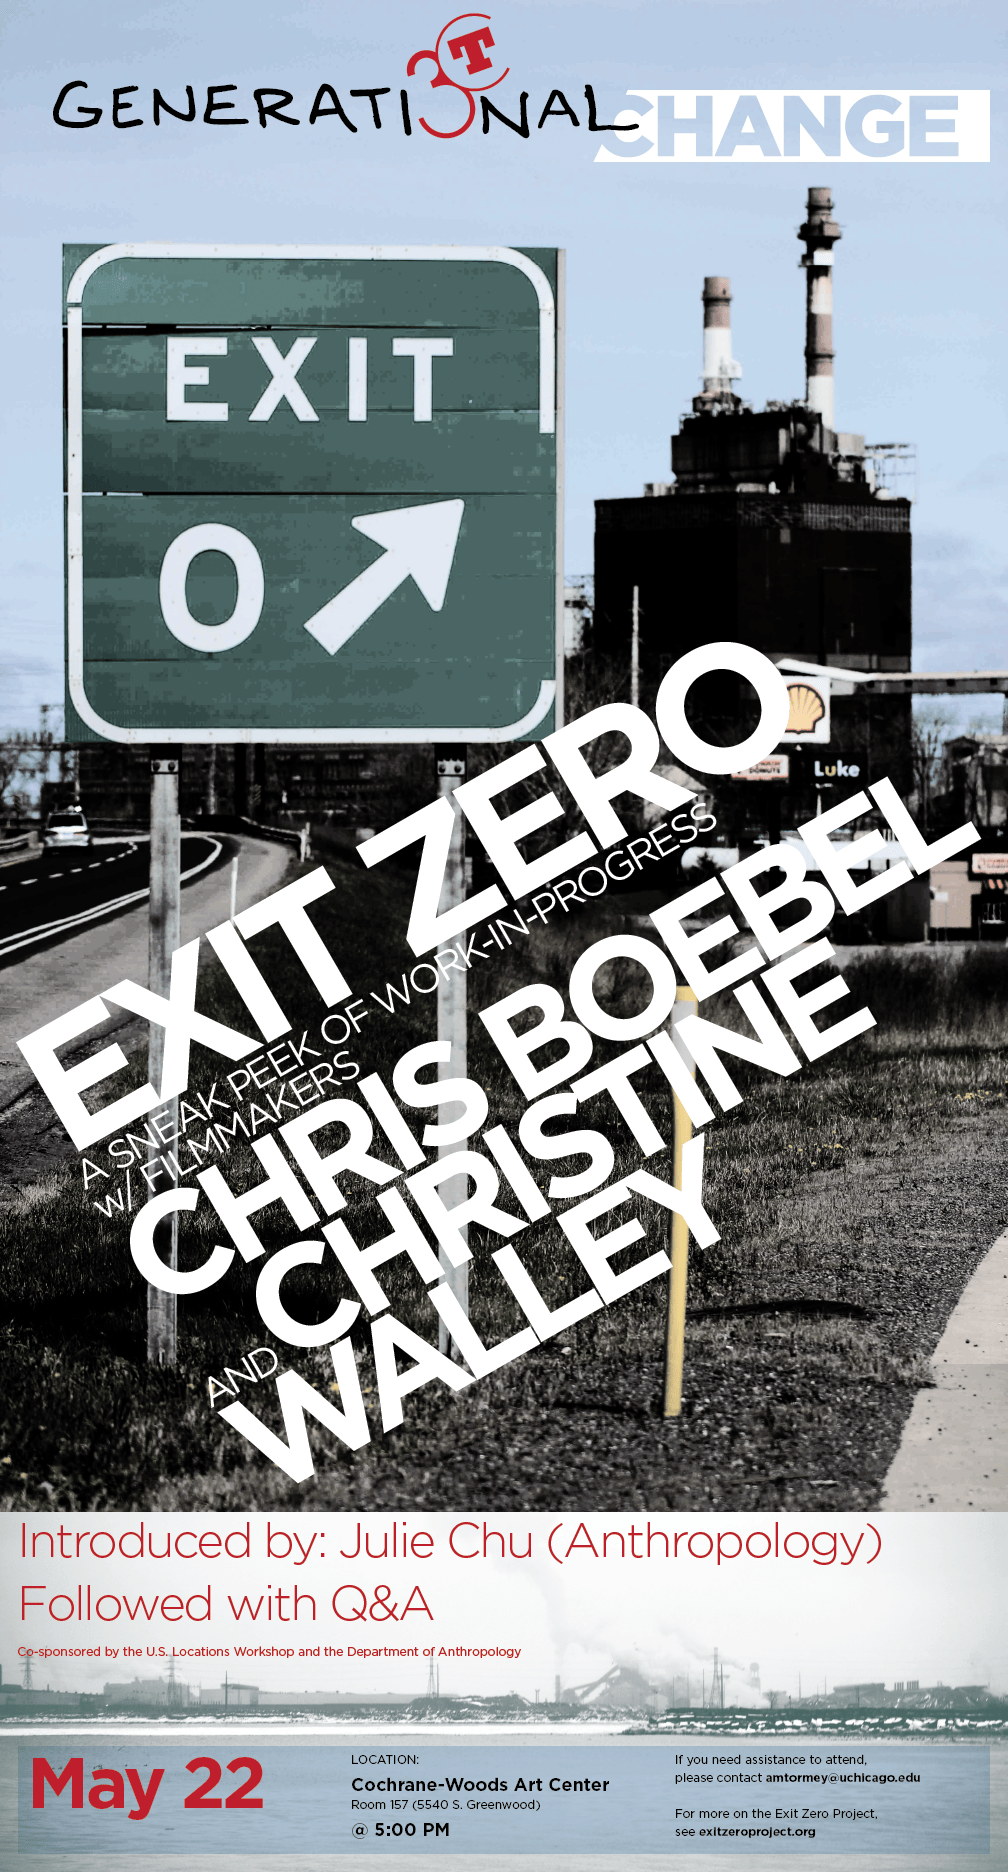 Event poster for Exit Zero symposium with Chris Boebel and Christine Walley at the Cochrane-Woods Art Center